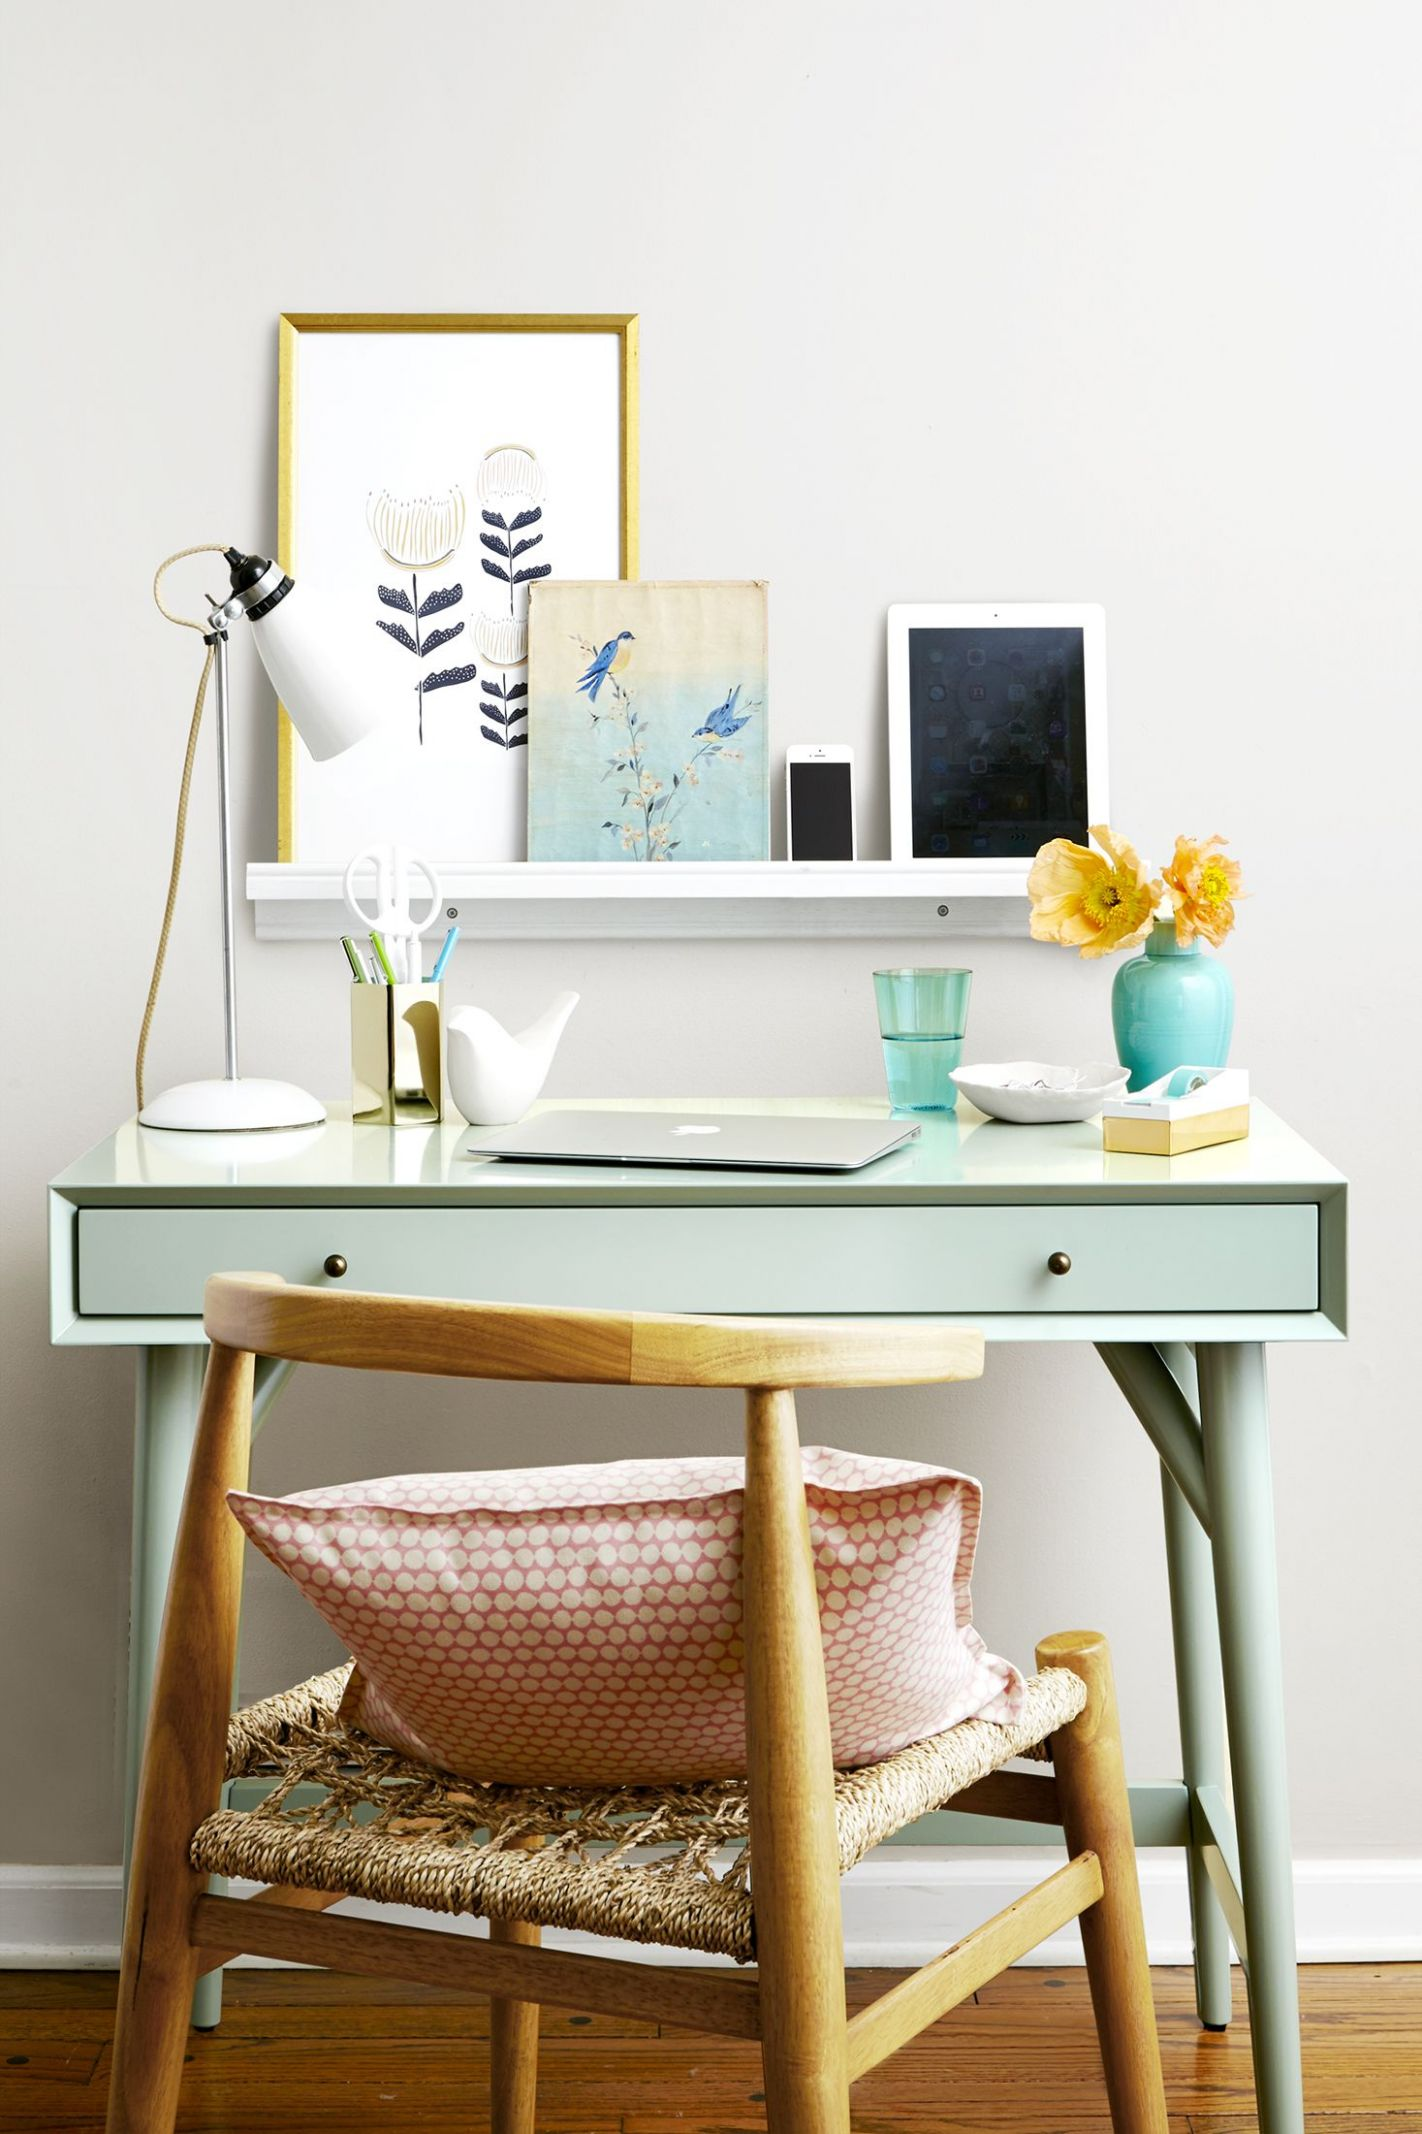 12 Best Home Office Decorating Ideas - Decor and Organization for ...